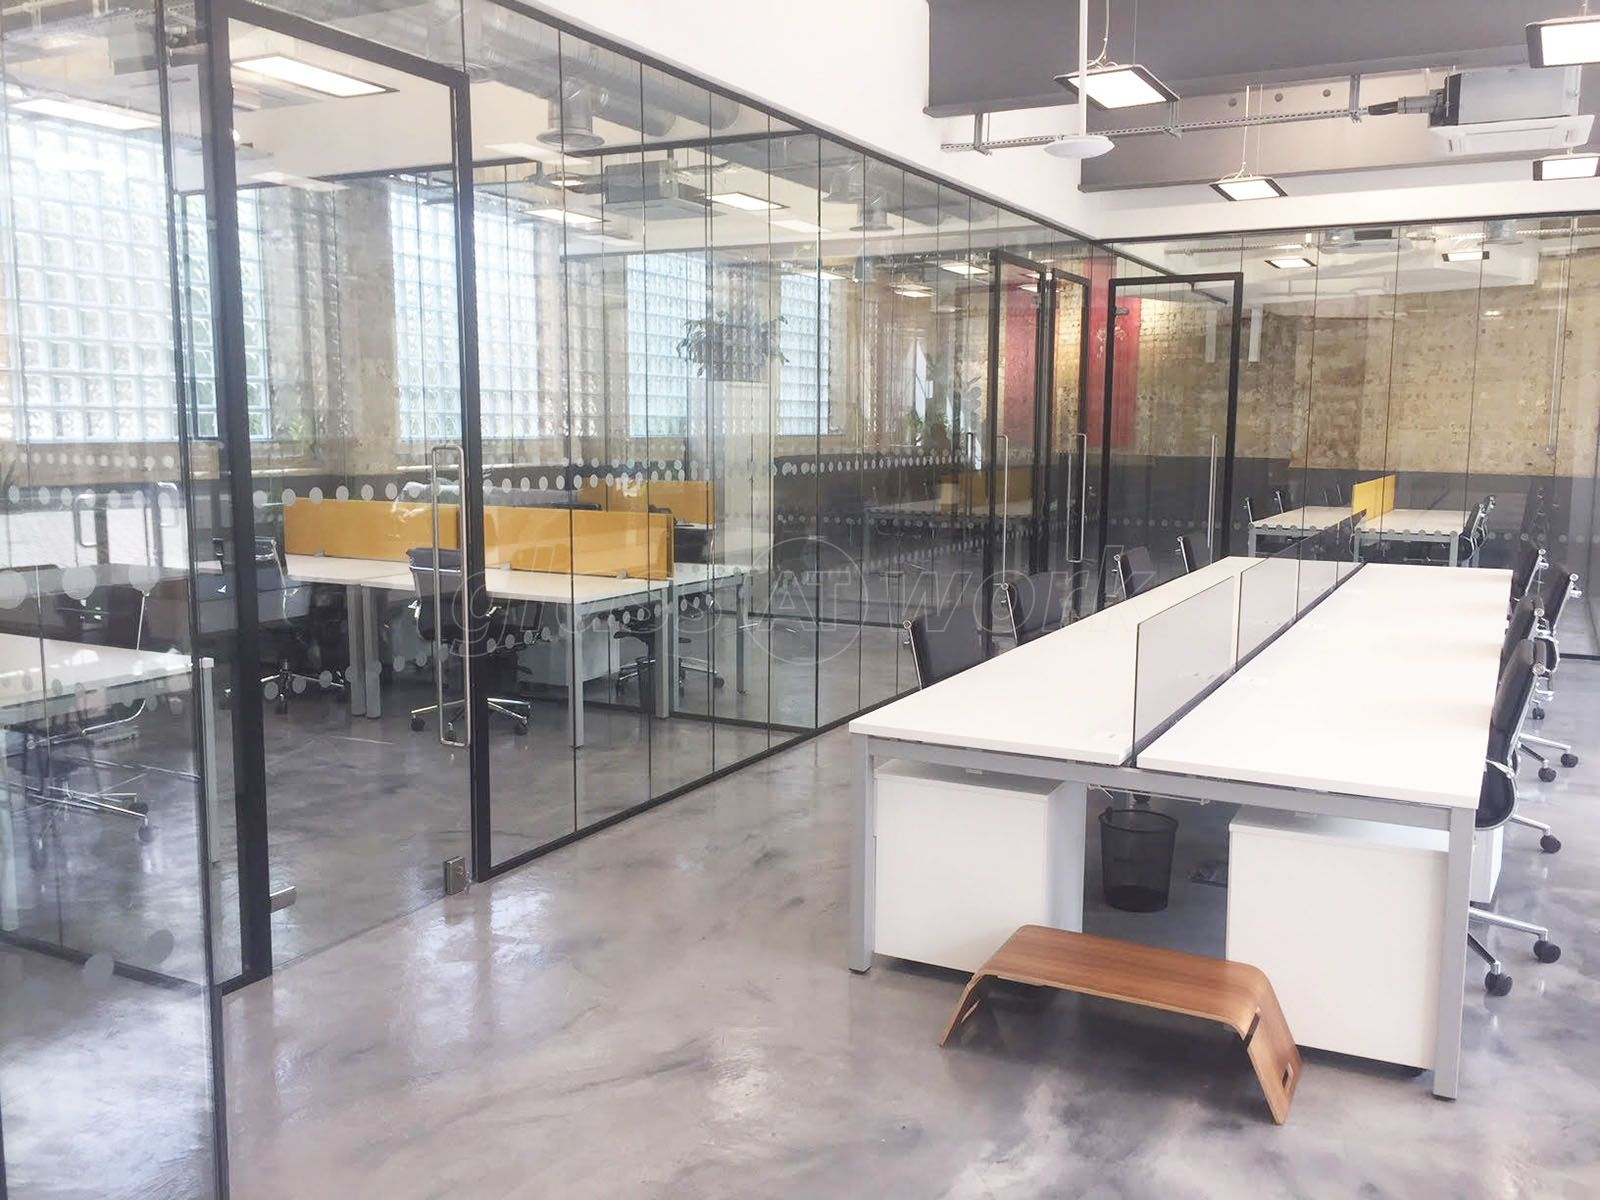 Commercial Glass Office Partition Fit-out (with black track work) for M Squared London Ltd in Dollis Hill, London.